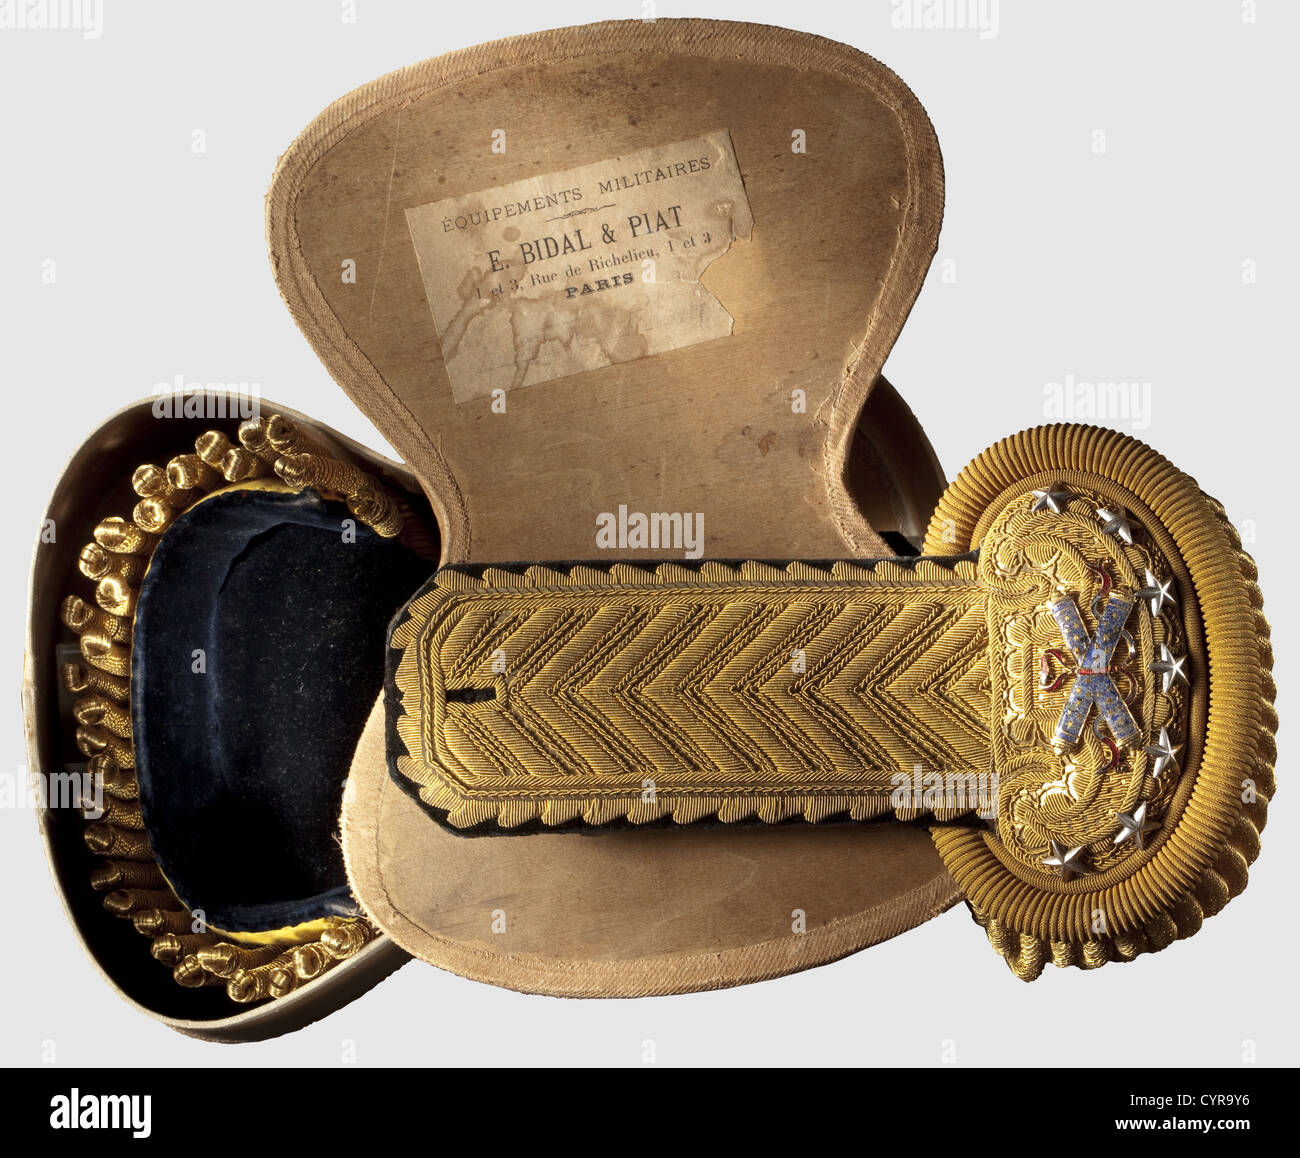 Marshal Philippe Pétain (1856 - 1951), his personal parade epaulettes Model 1872 epaulettes for French field - Stock Image